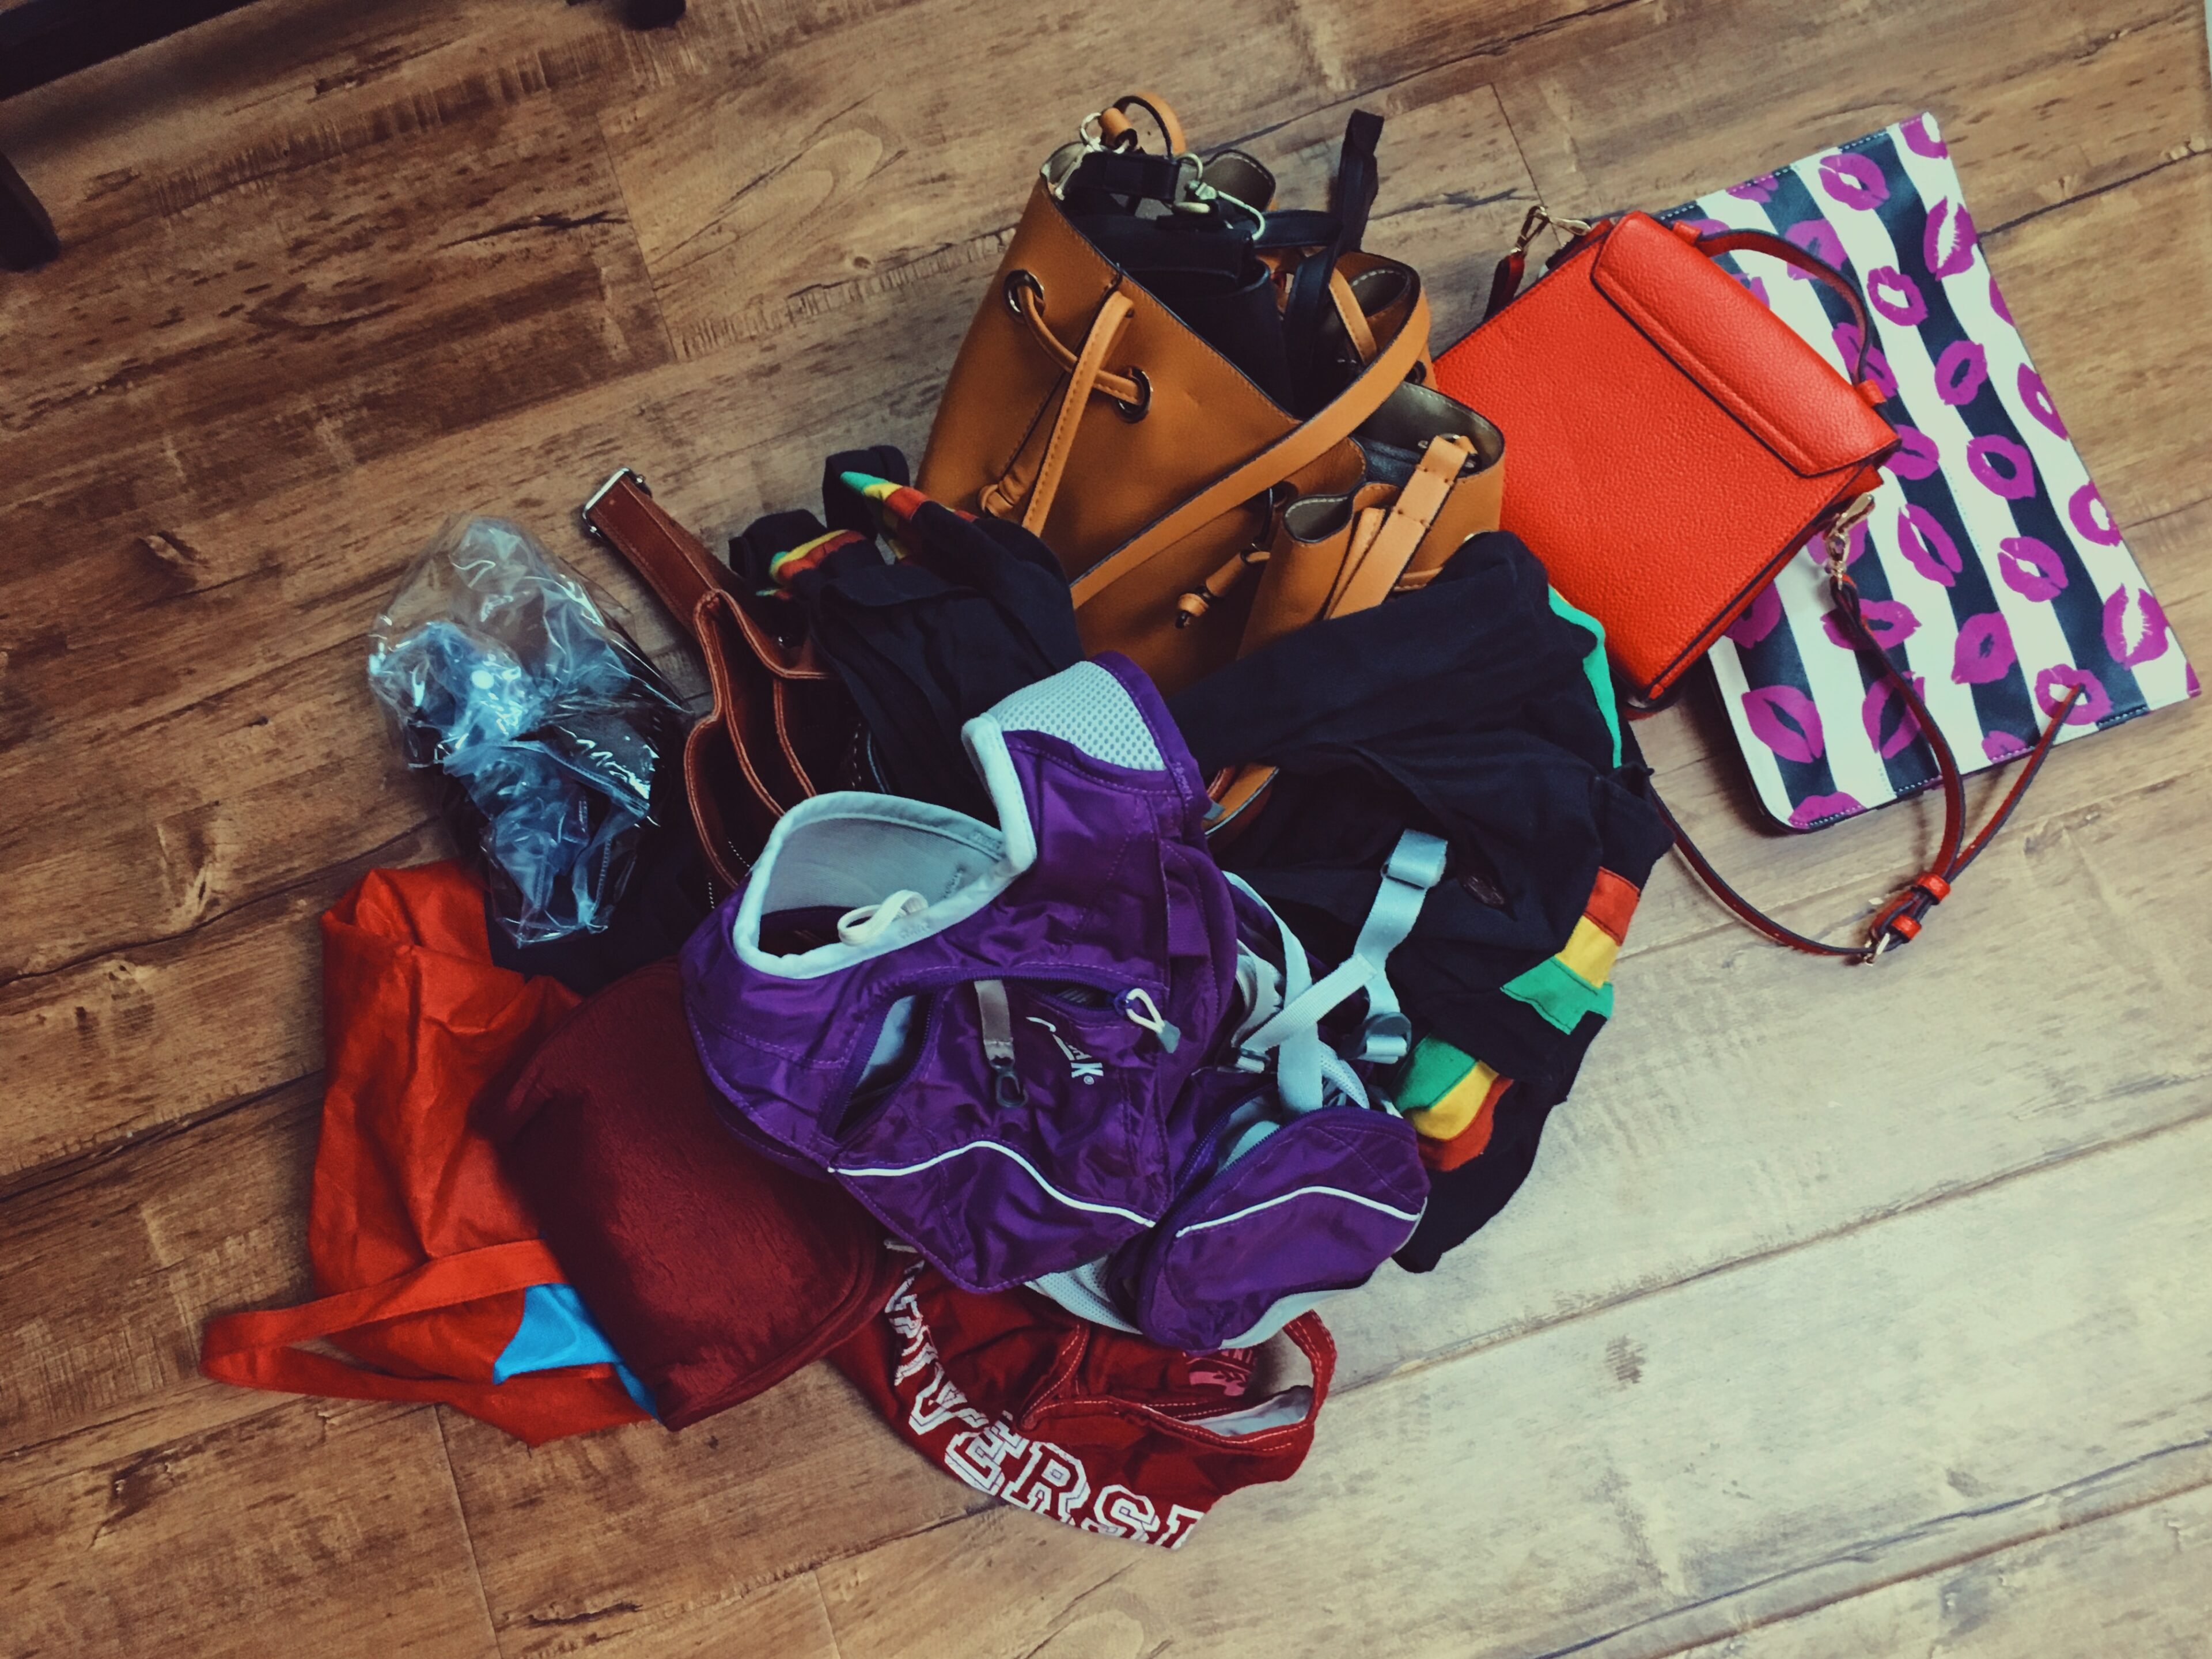 bags and purses on the floors-wear who you are